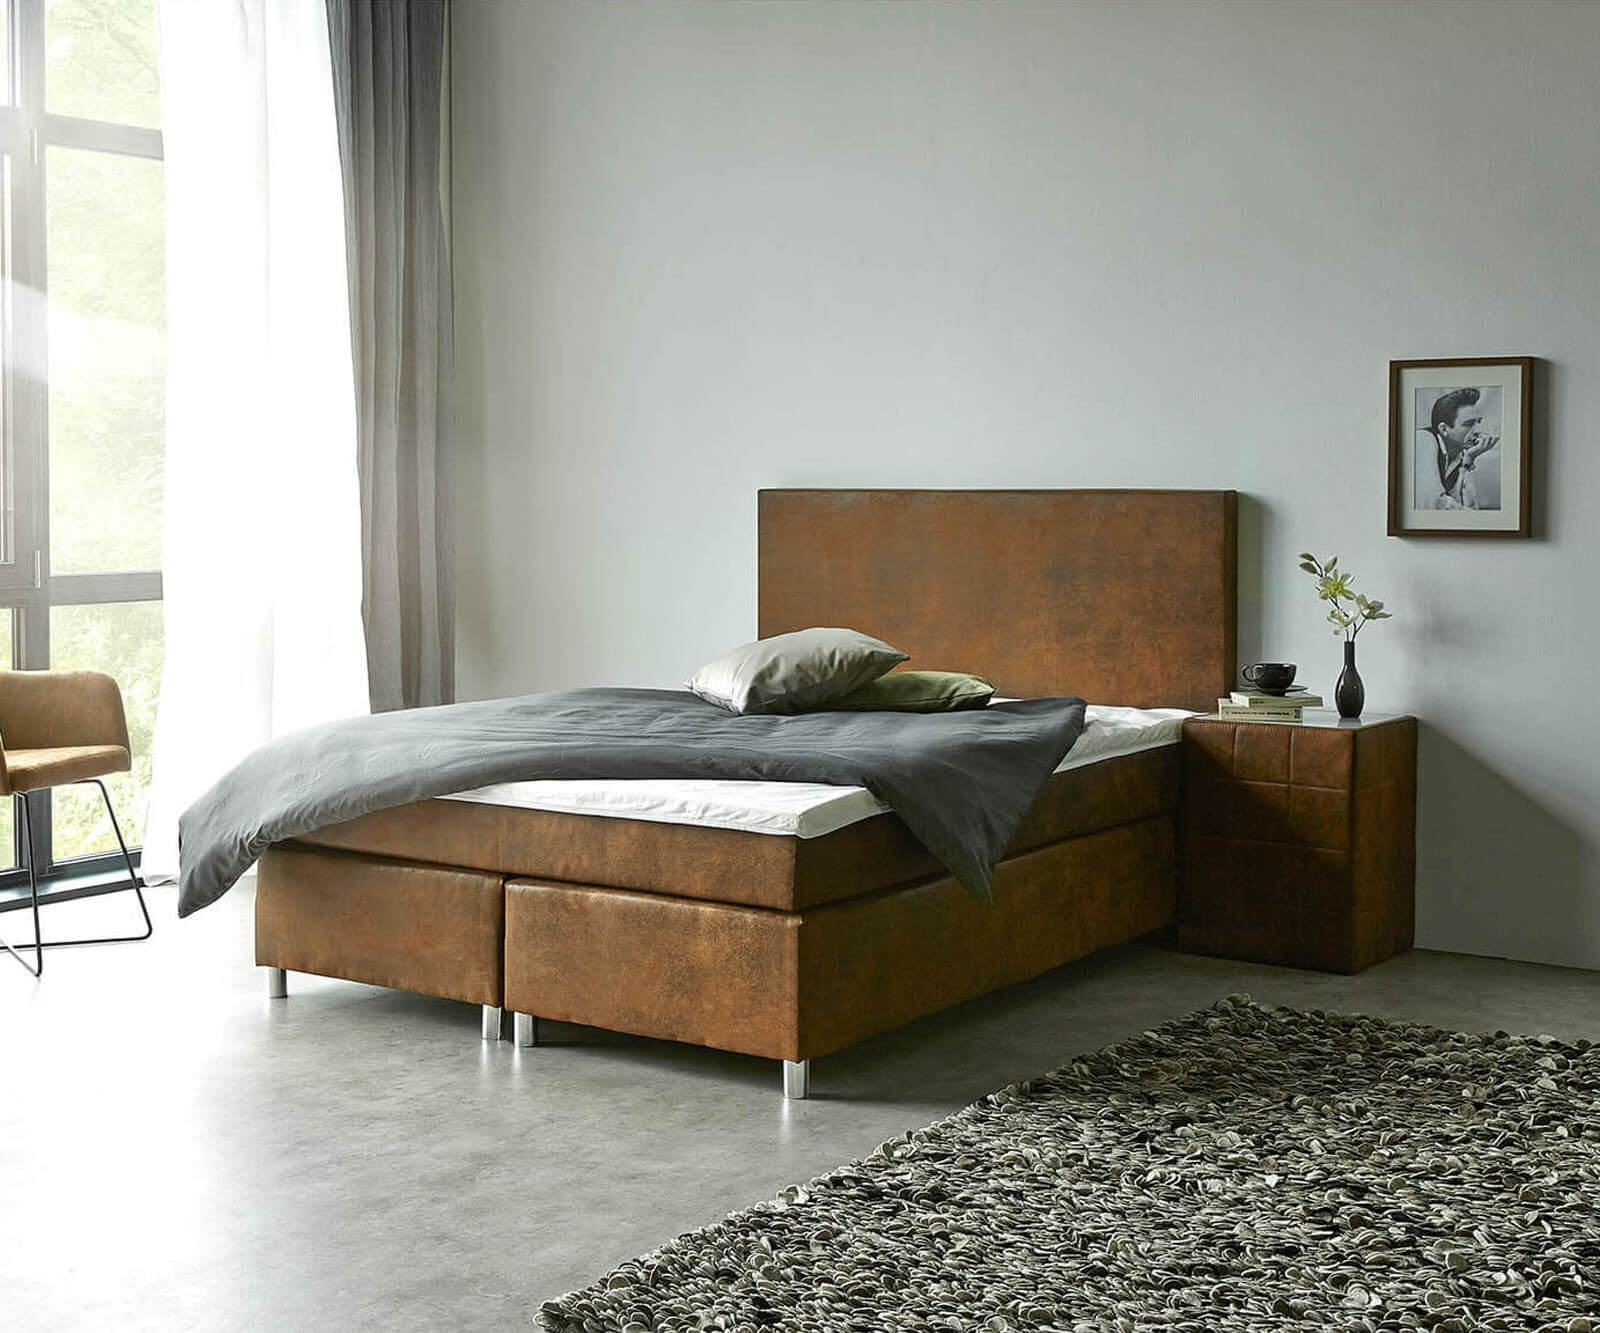 DELIFE Boxspringbett Cloud 140x200 cm Braun Topper und Matratze Microvelours, Boxspringbetten